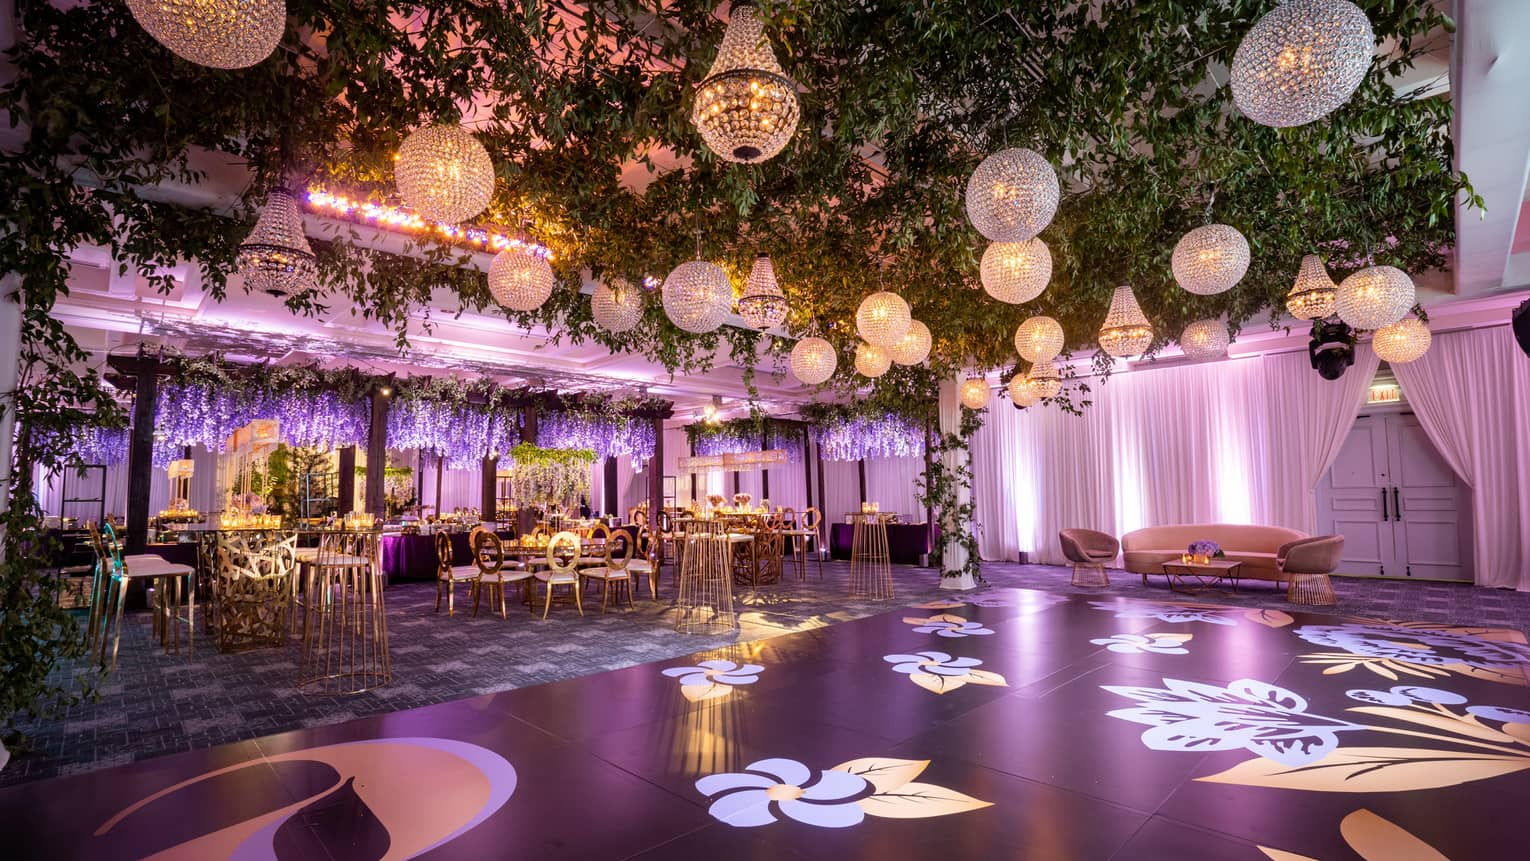 Tables, chairs, and a dance floor, lattice ceiling with green garlands, and crystal chandeliers.